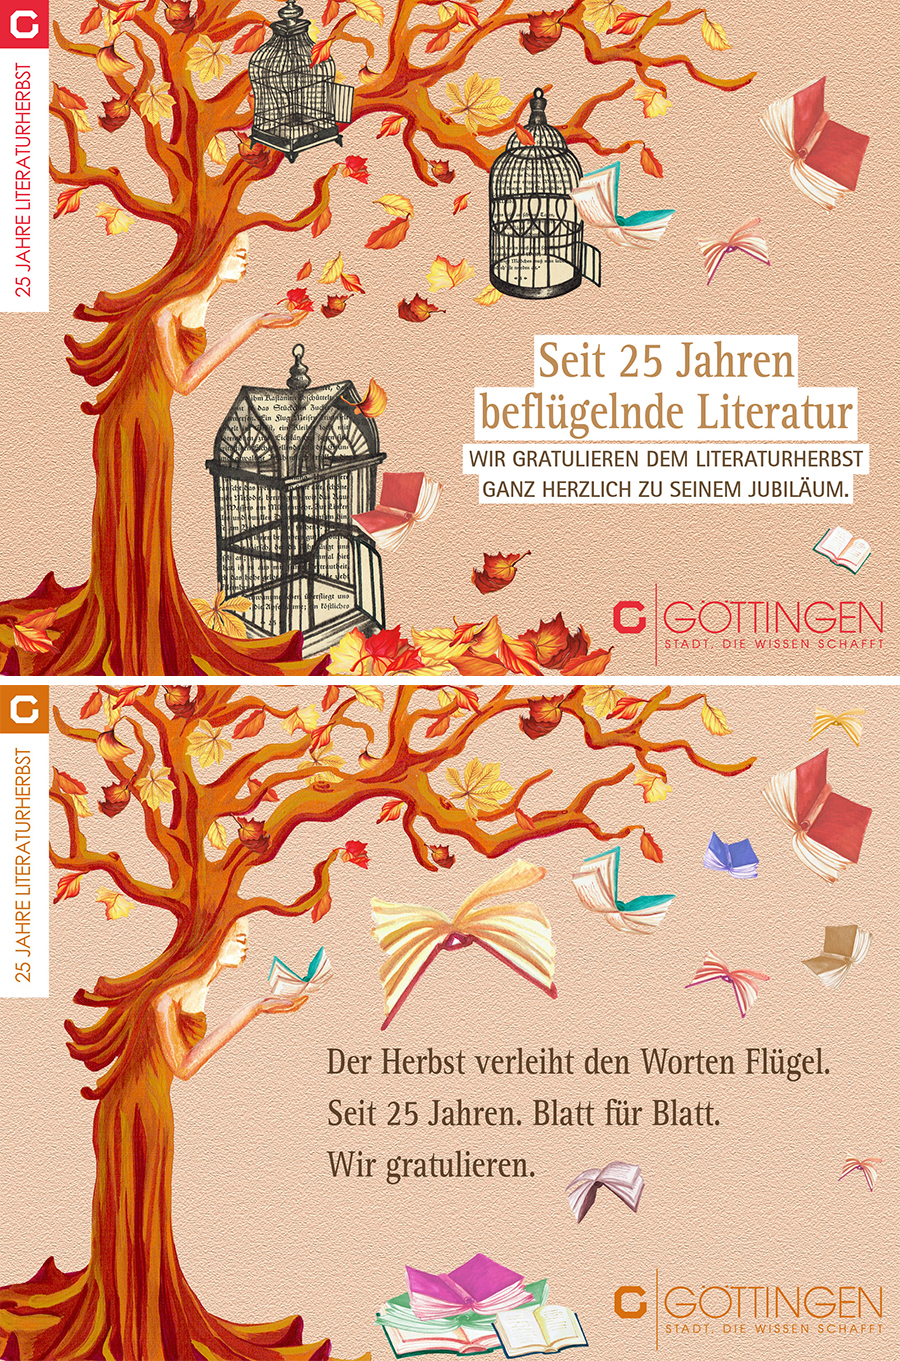 Laura Finke Illustration + Amaretis Agentur für Kommunikation – Literaturherbst Göttingen (first+final)